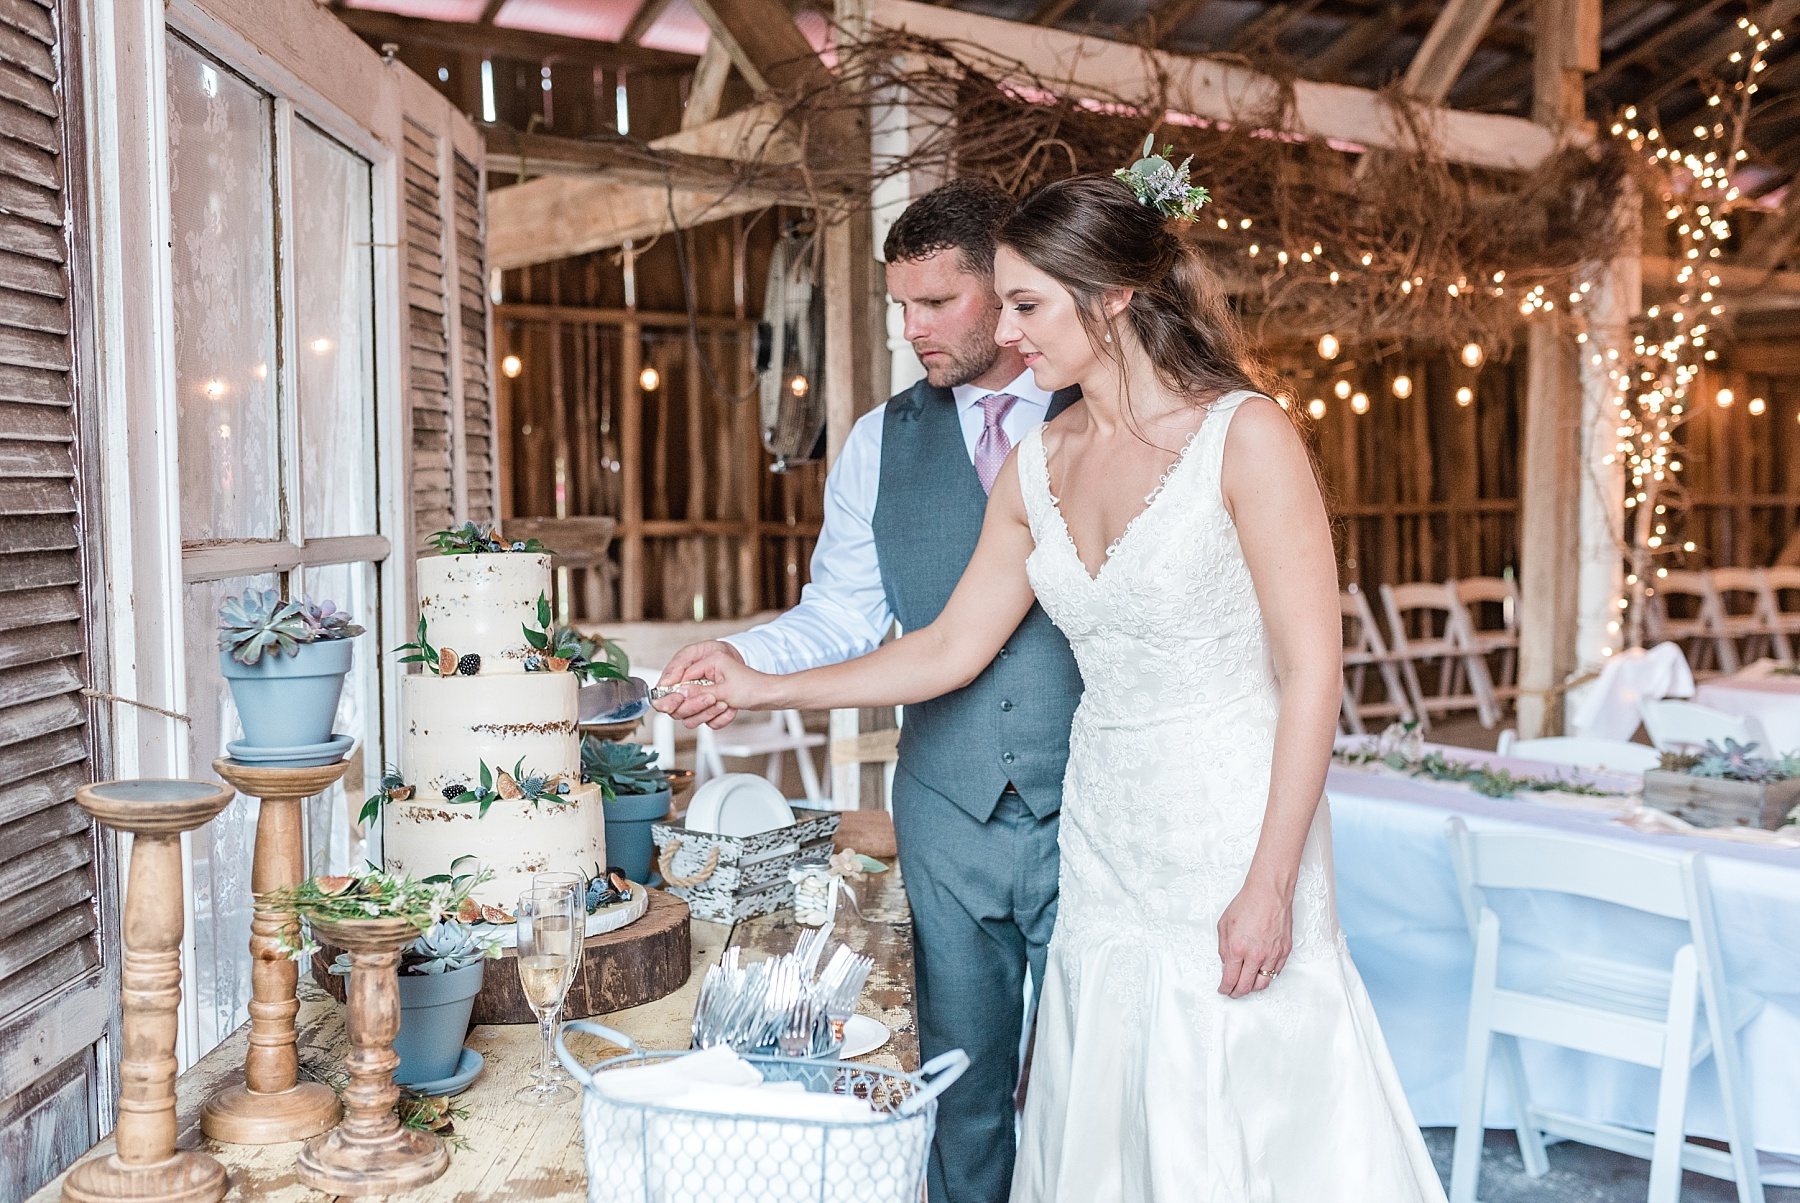 Fine Art Sunset Themed Wedding in Autumn at Dodson Orchards by Kelsi Kliethermes Photography_0017.jpg